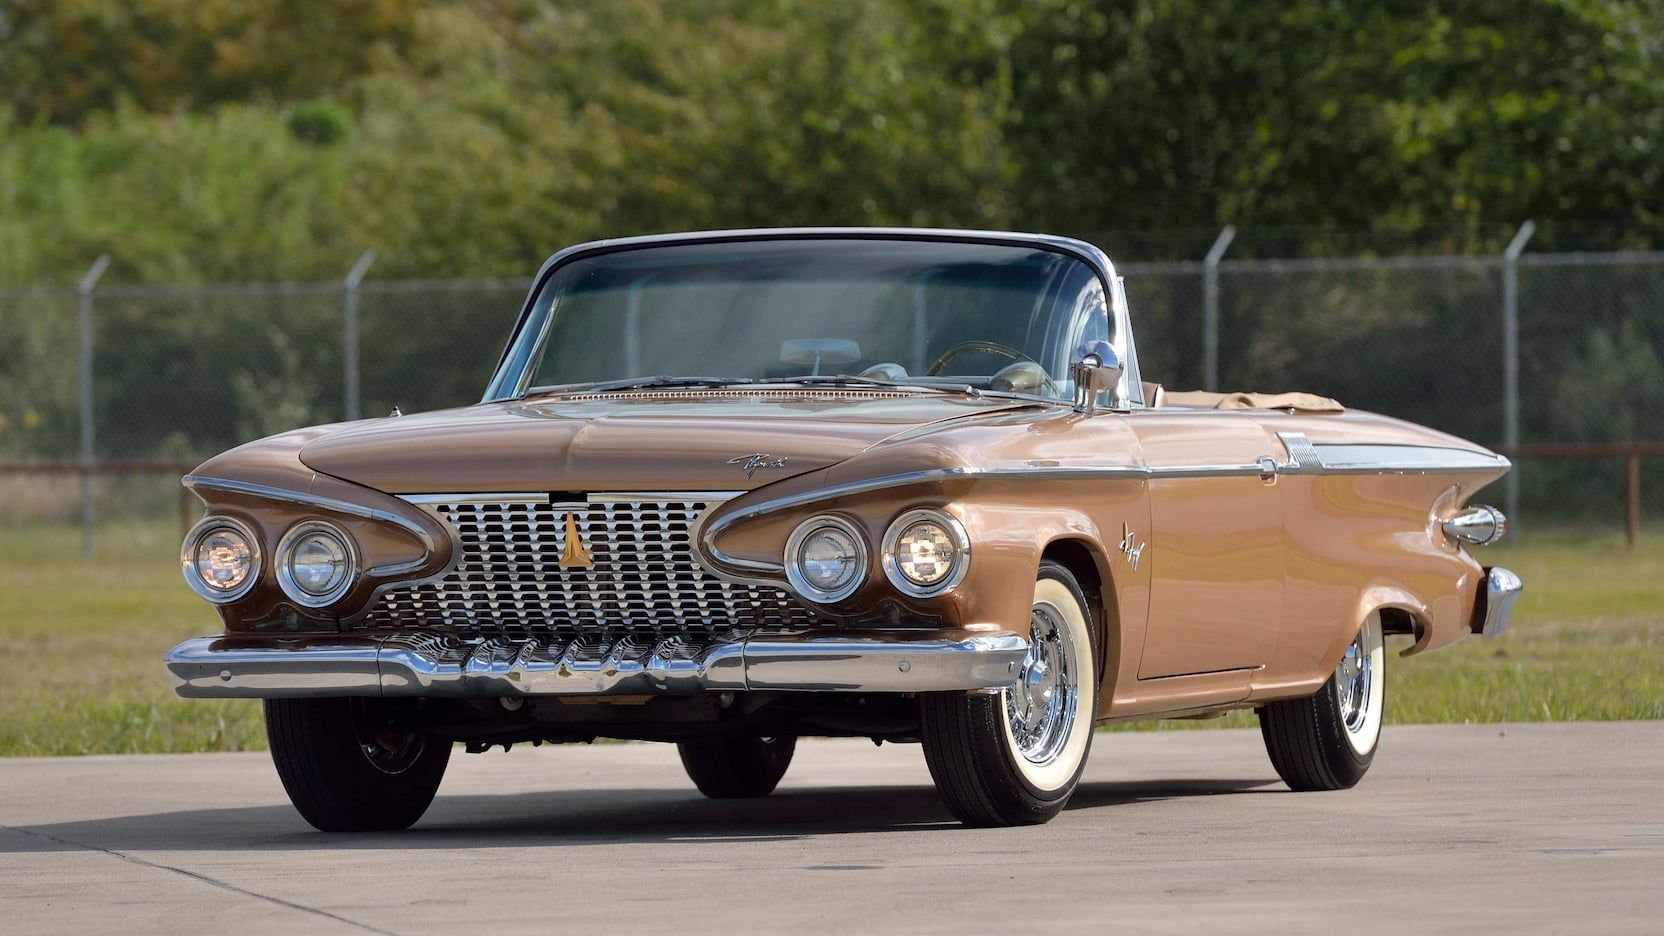 1961 Plymouth Fury Convertible presented as Lot F105.1 at